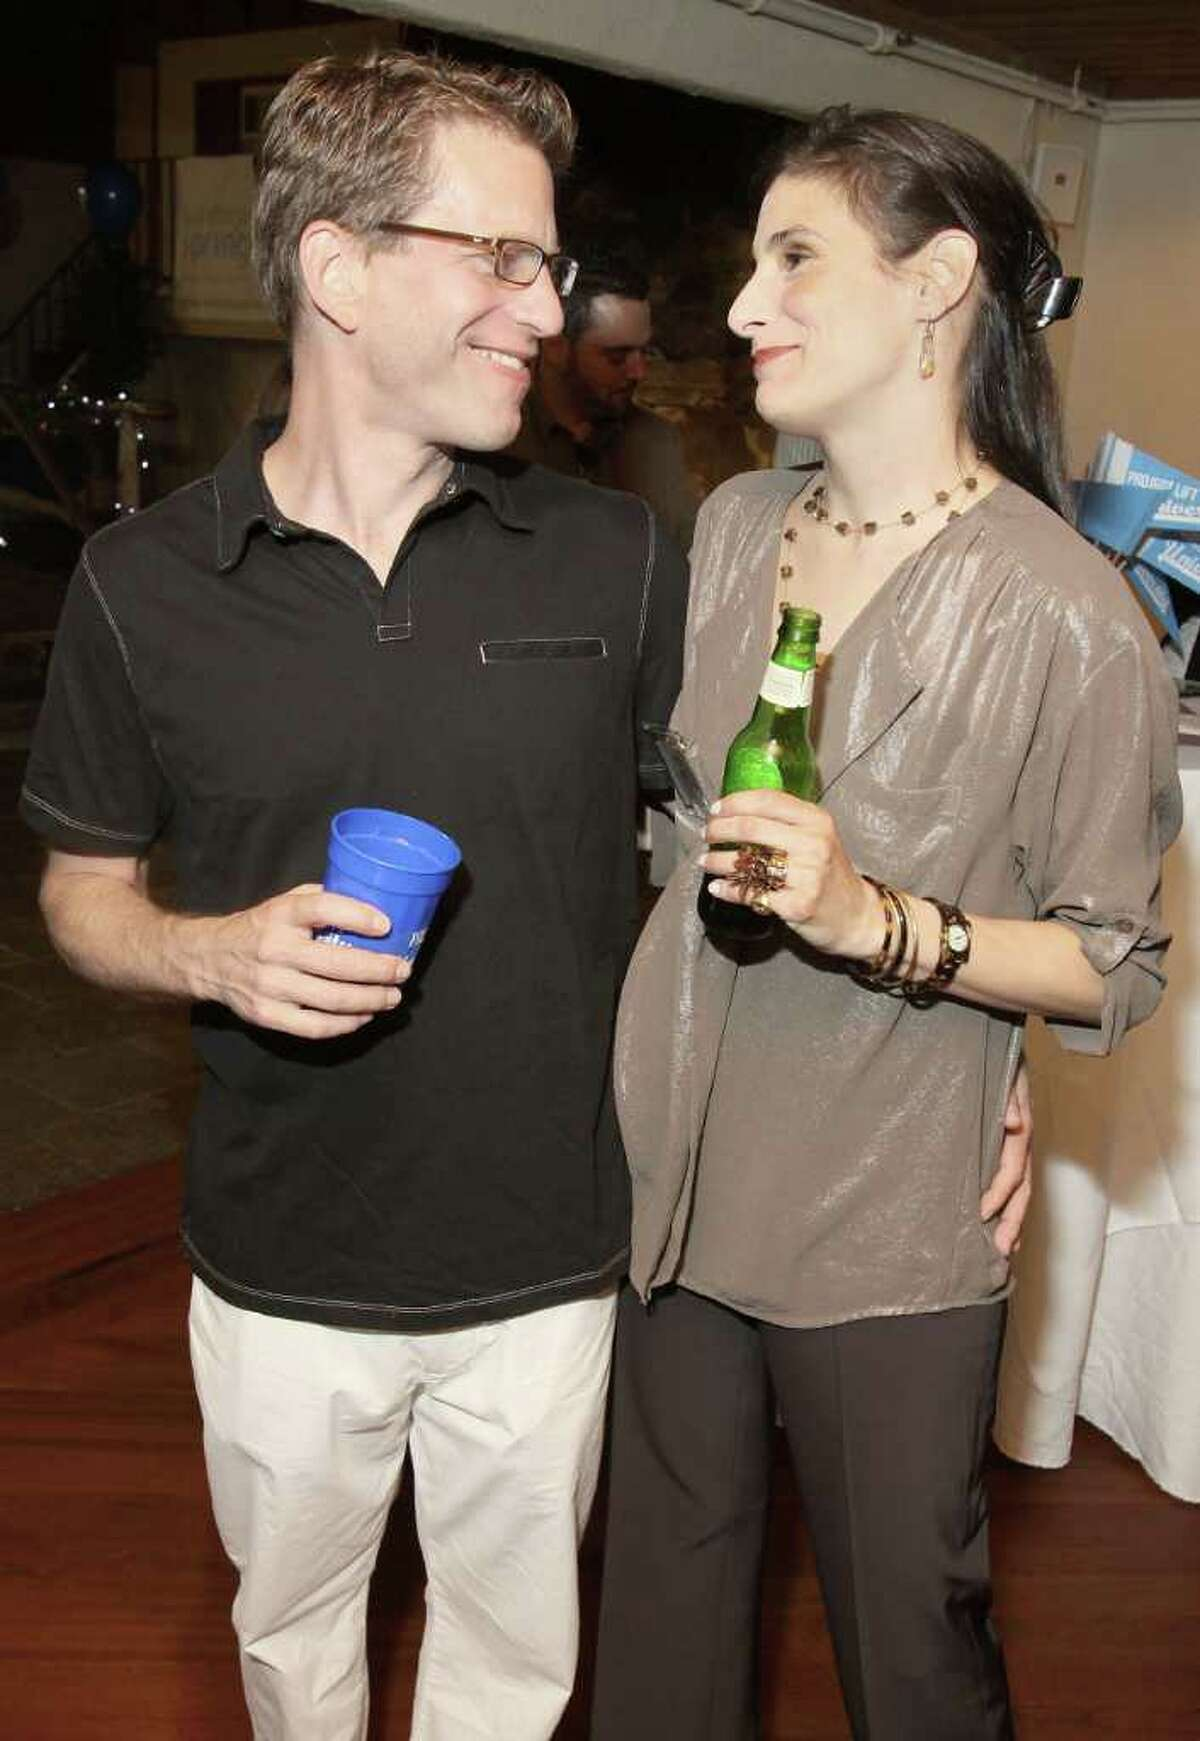 Saratoga Springs, NY - June 23, 2011 - (Photo by Joe Putrock/Special to the Times Union) - Daniel Moss(left) and Serena Savage(right) during Project Lift University, a benefit for Franklin Community Center's Project Lift presented by Saratoga Springboard.